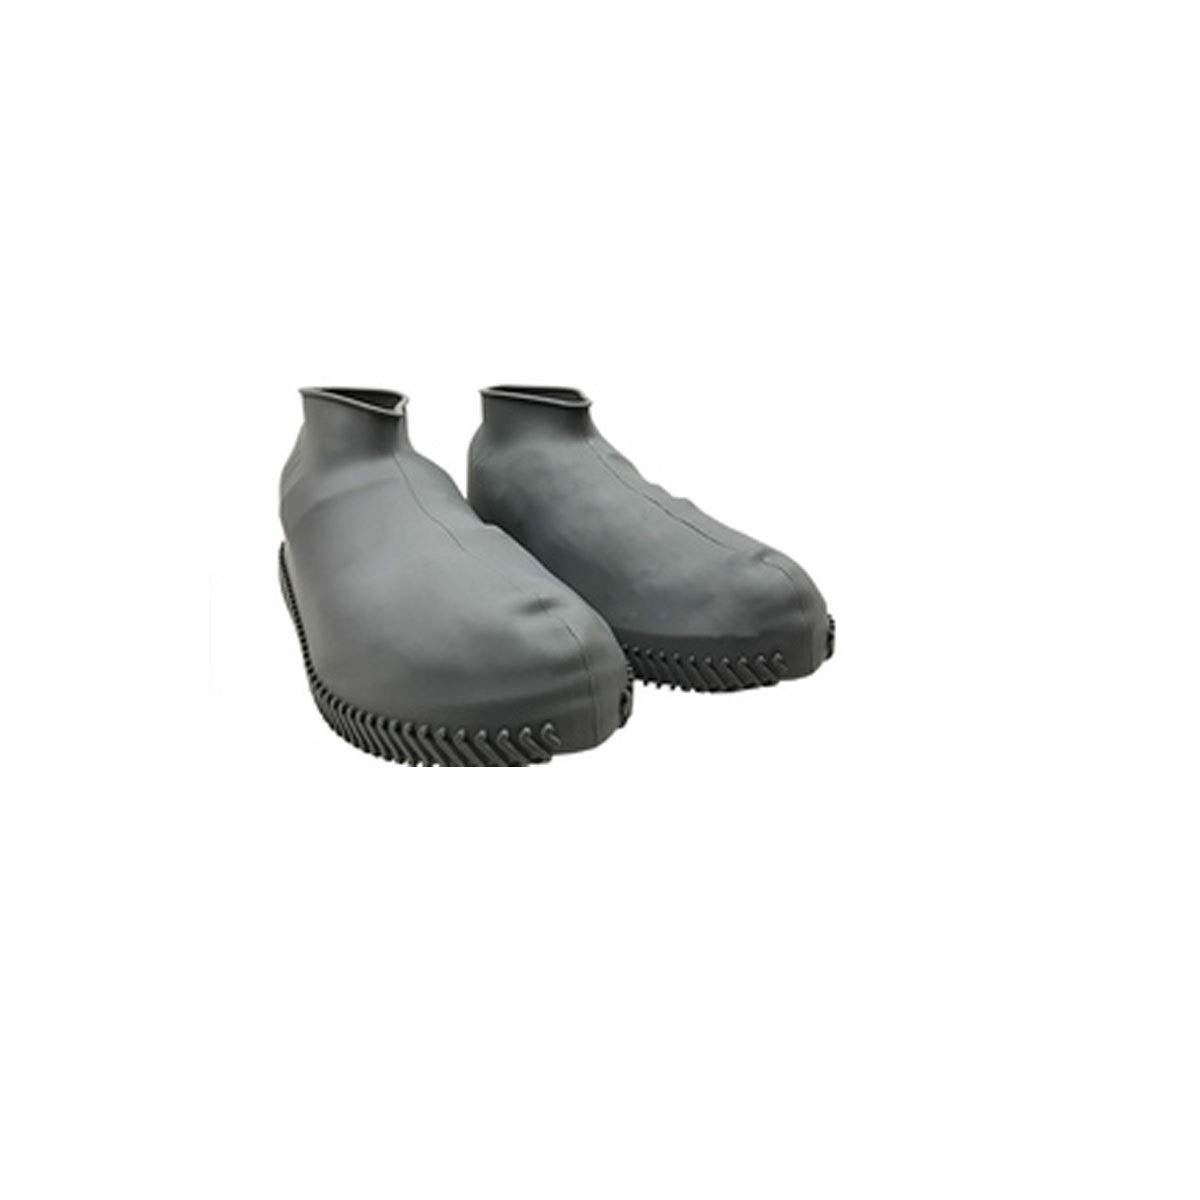 WUHUIZHENJINGXIAOBU Waterproof Shoe Cover, rain-Proof Water-Like Rubber wear-Resistant Shoe Bag, Free to Choose from a Variety of Colors Shoe Covers That can be Worn on Rainy Days, (Color : Gray-L)